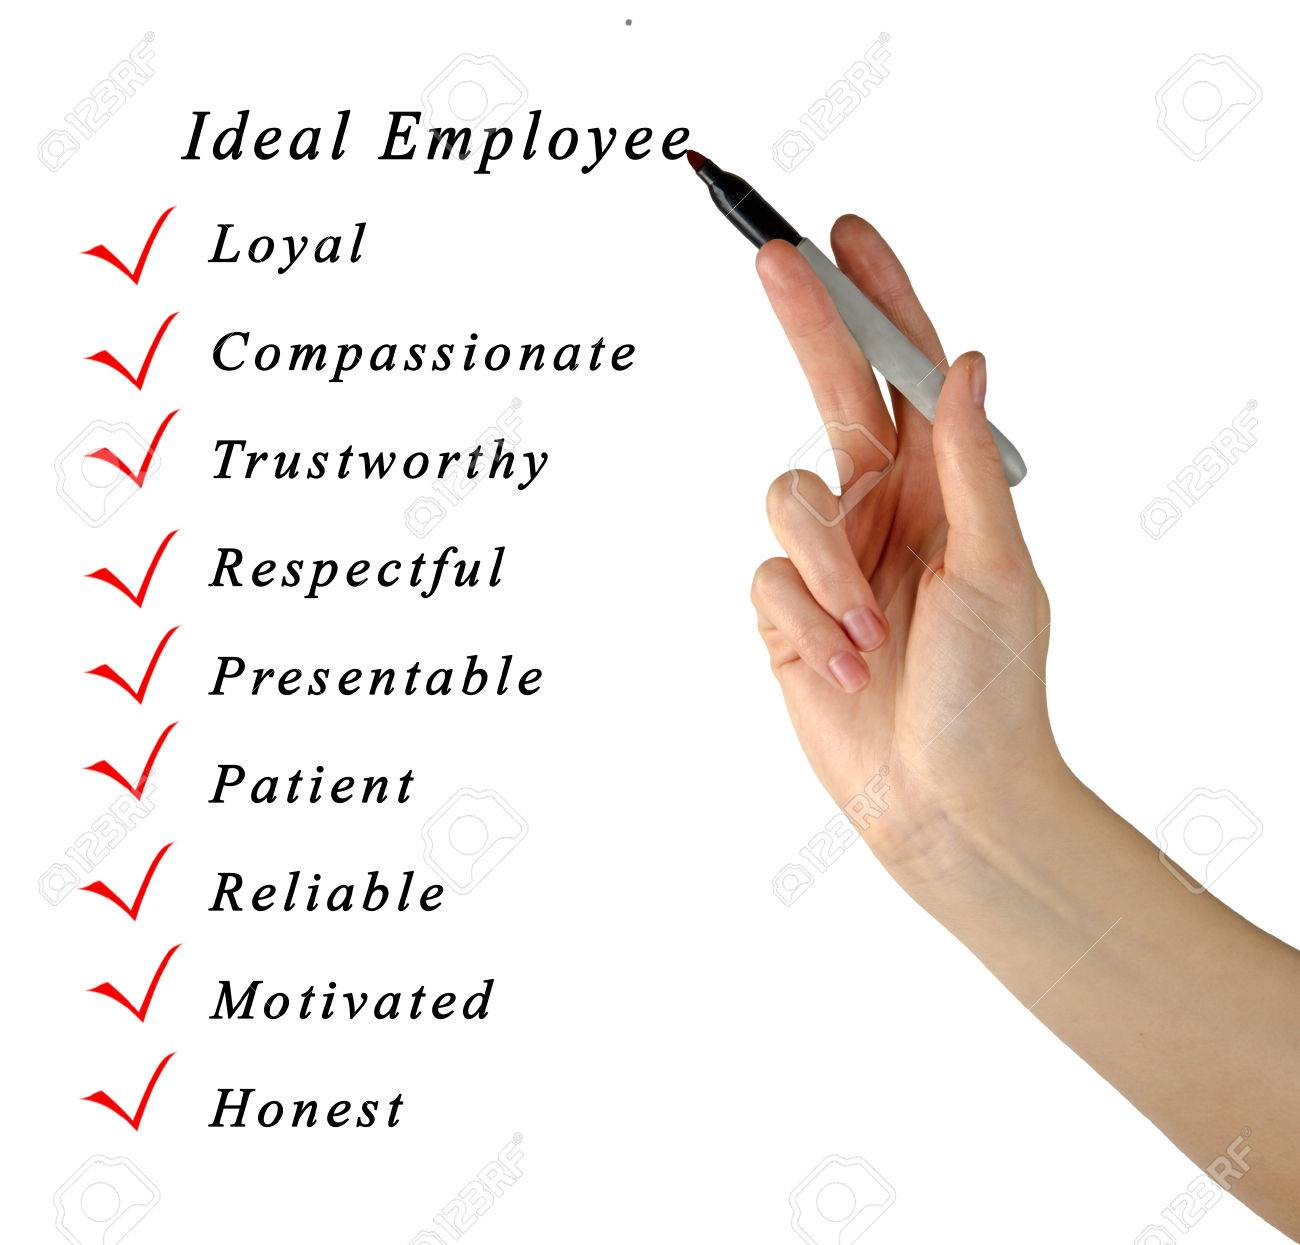 ideal employee stock photo picture and royalty image image ideal employee stock photo 31164339